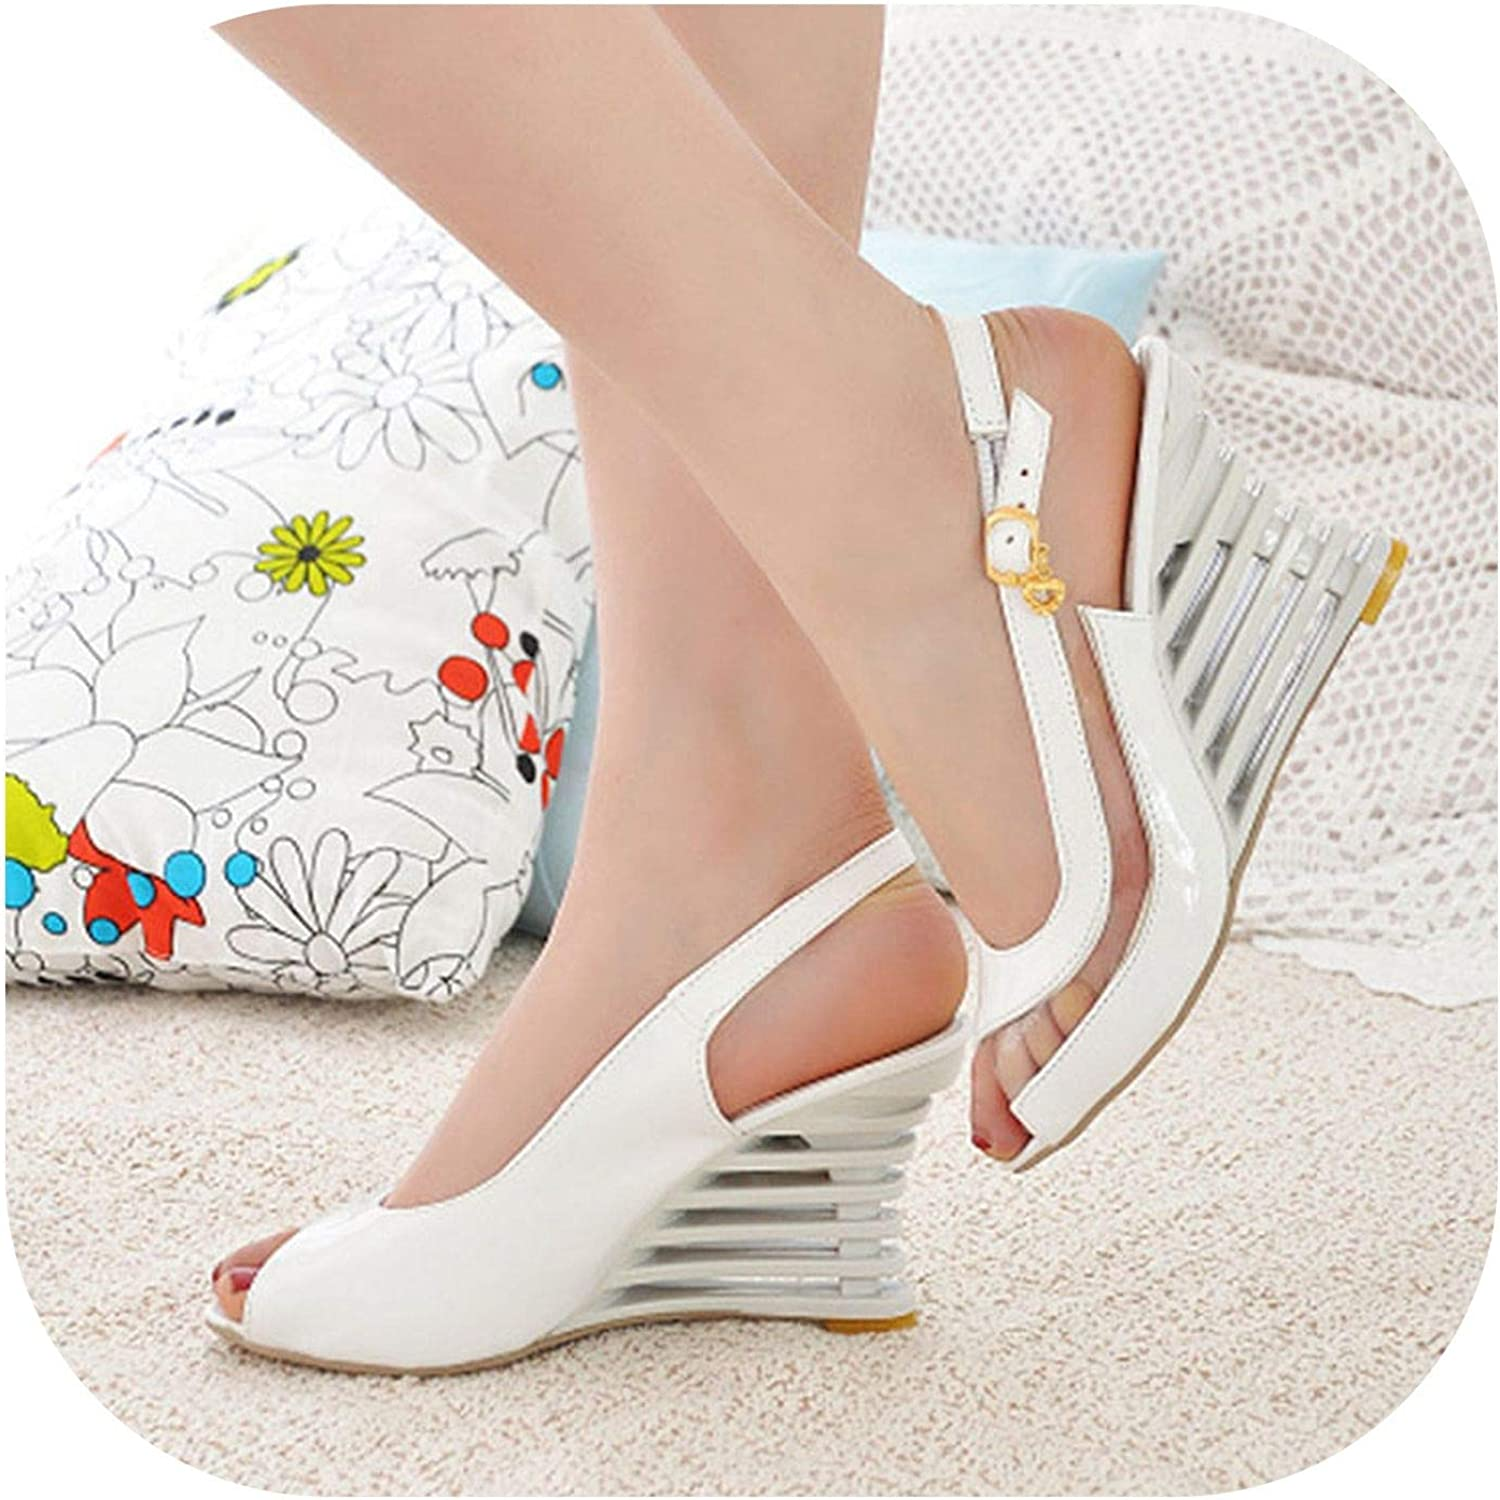 2019 New Women Heel Sandals Buckle Open Toe High Wedge shoes Women's Summer shoes Sexy Women shoes Footwear Size 34-43